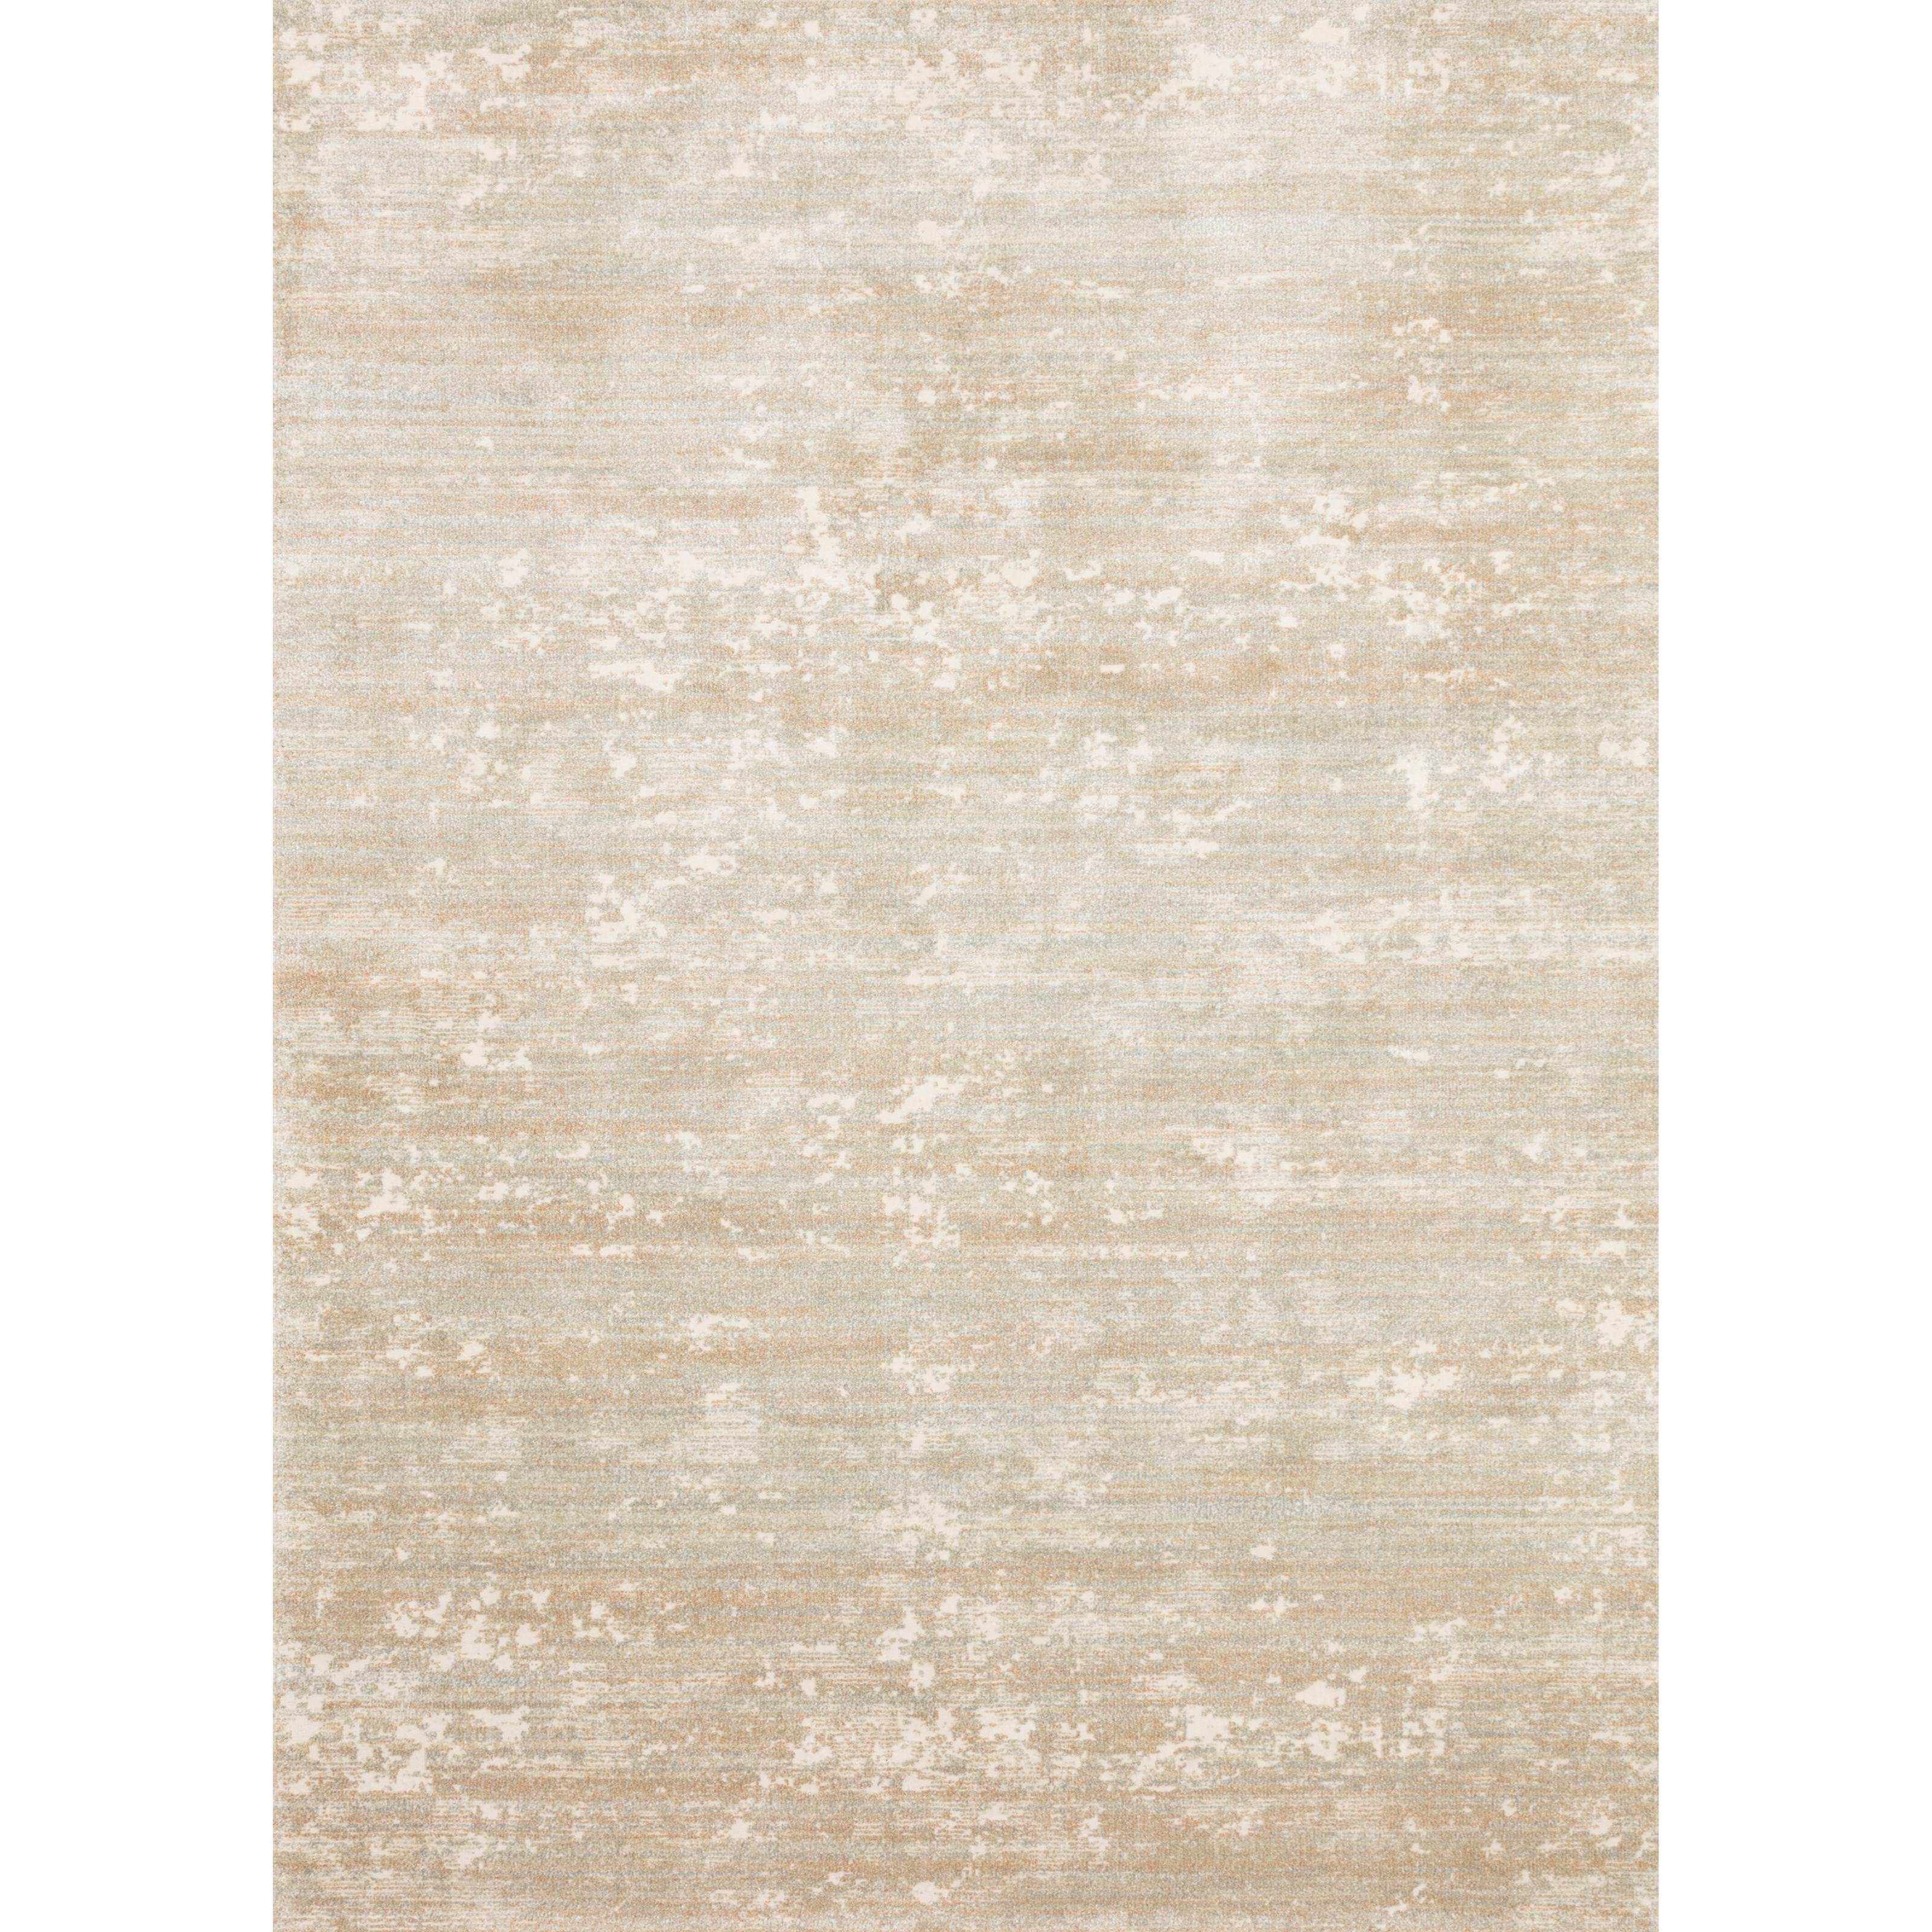 """Augustus 2'7"""" x 13' Sunset / Mist Rug by Loloi Rugs at Virginia Furniture Market"""